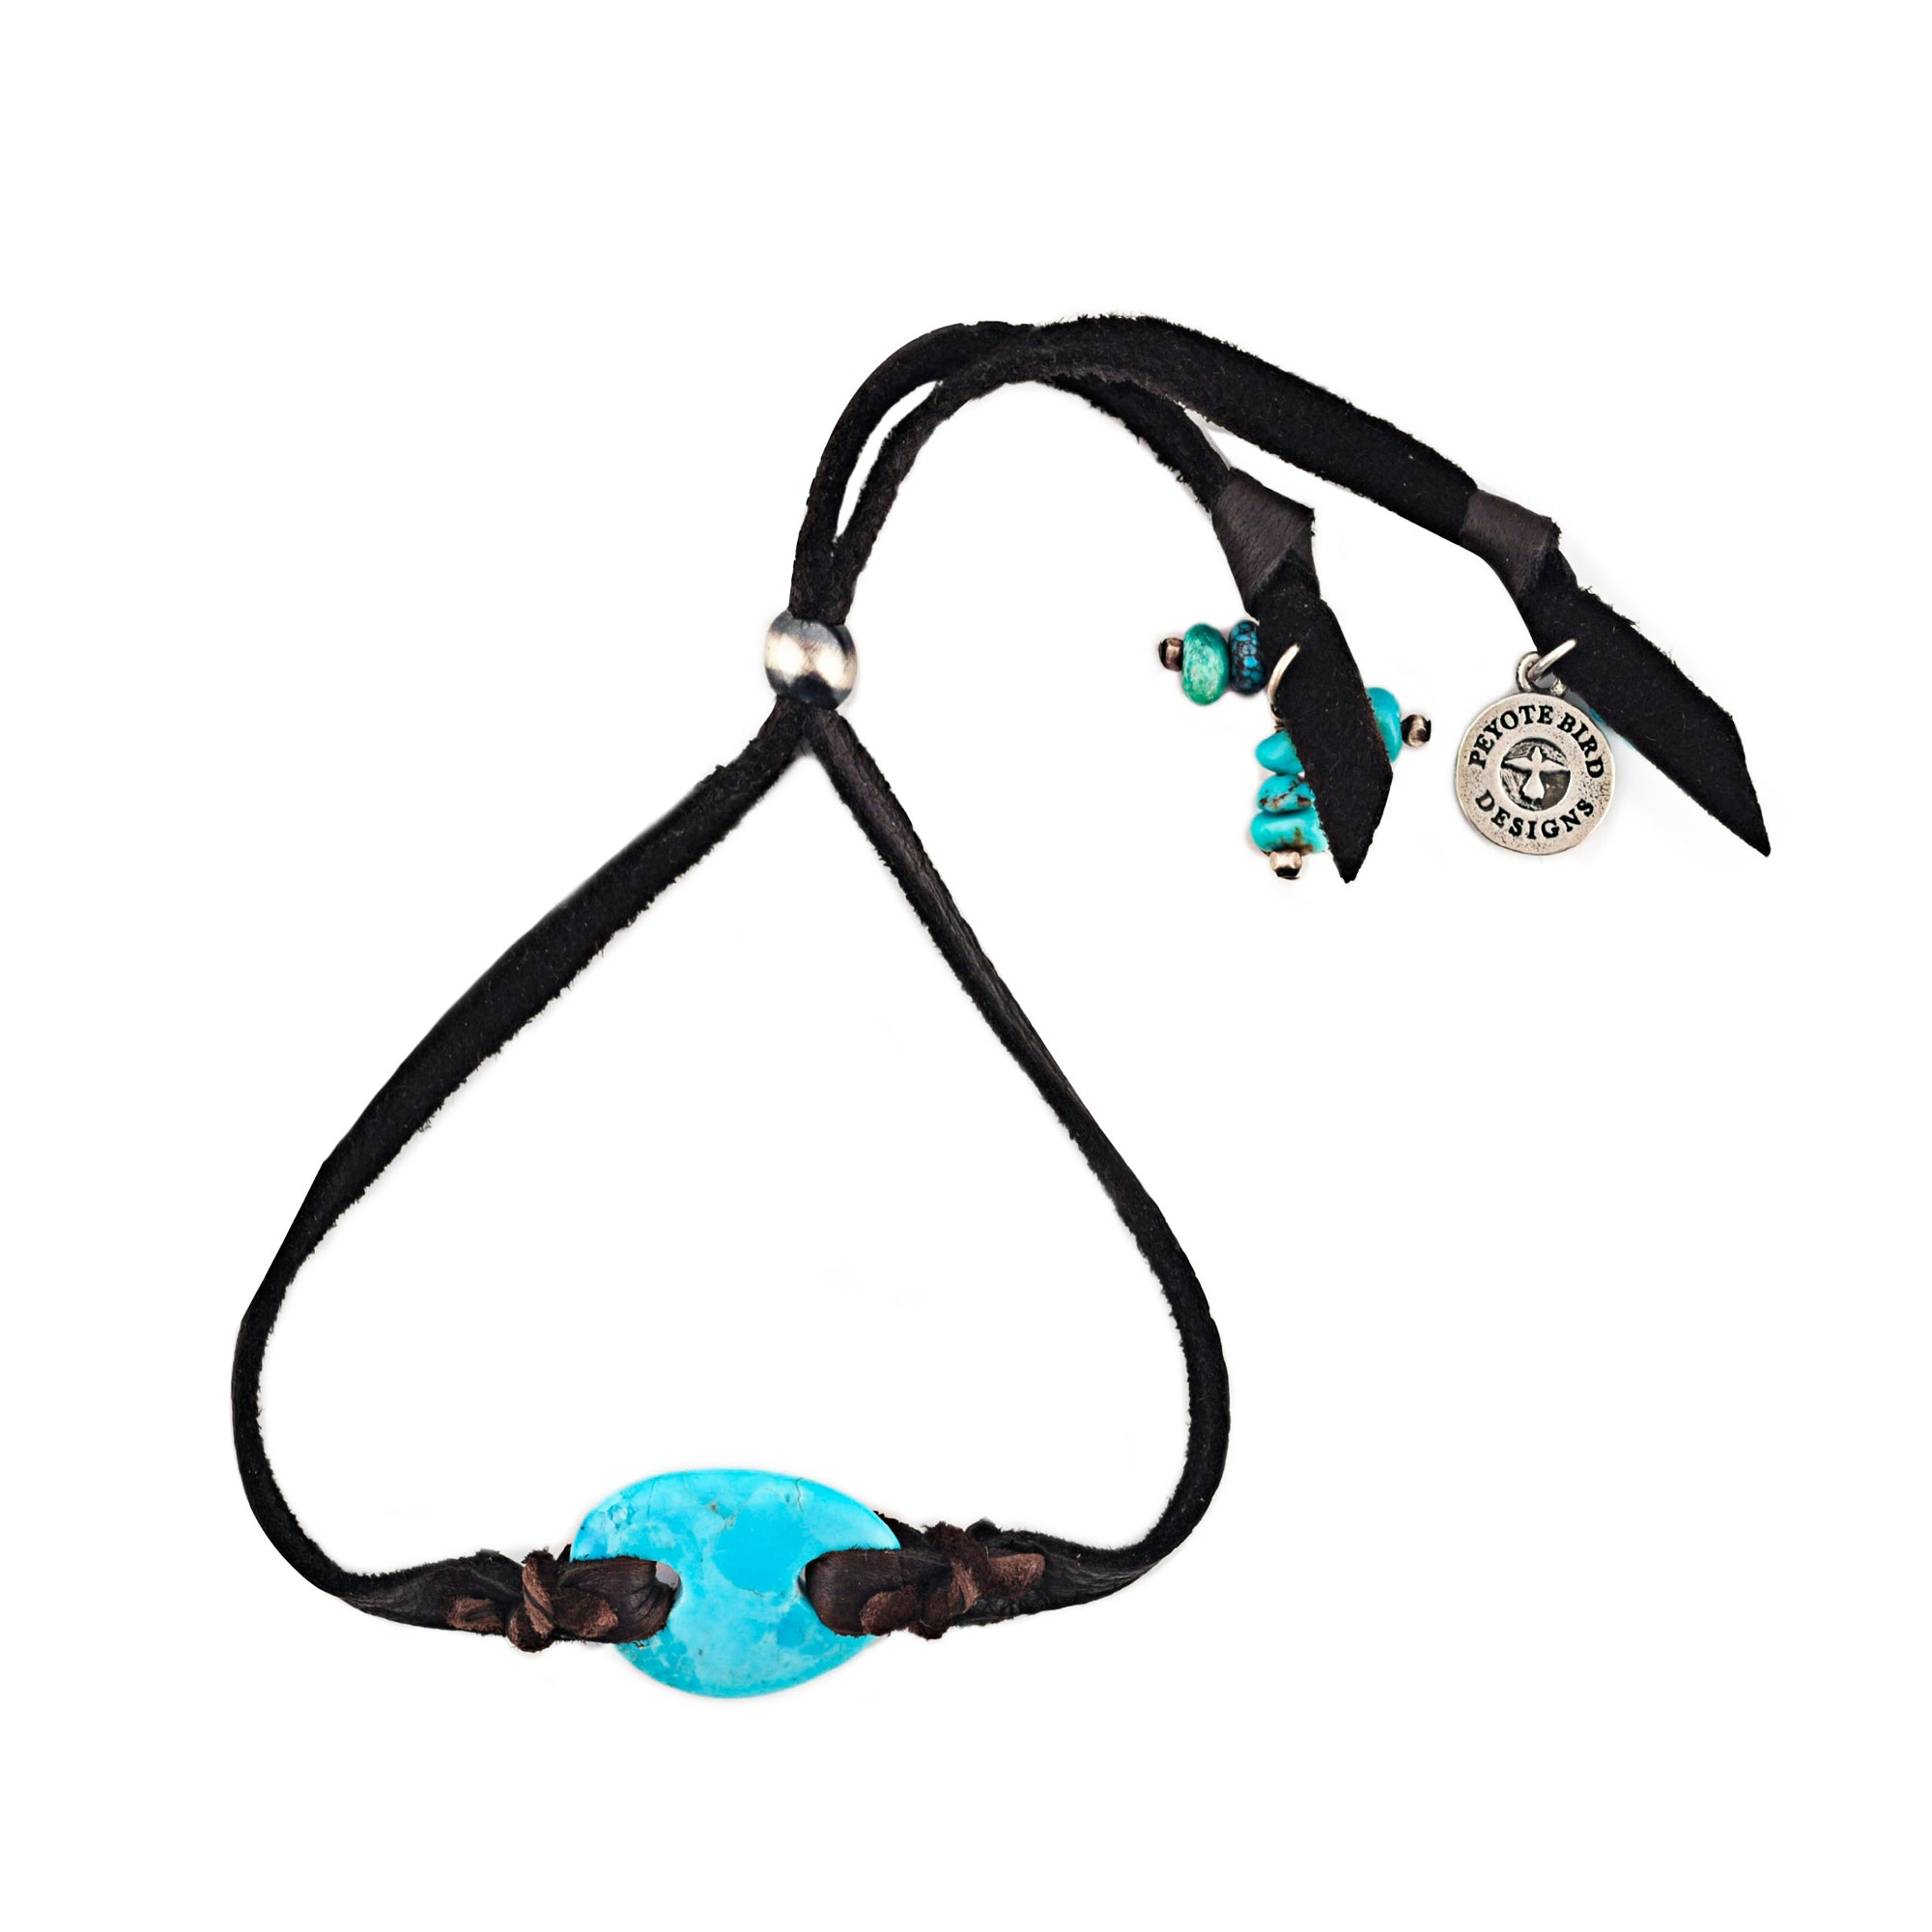 Bracelet, Novelty, Turquoise & Leather, Dustin's Girl